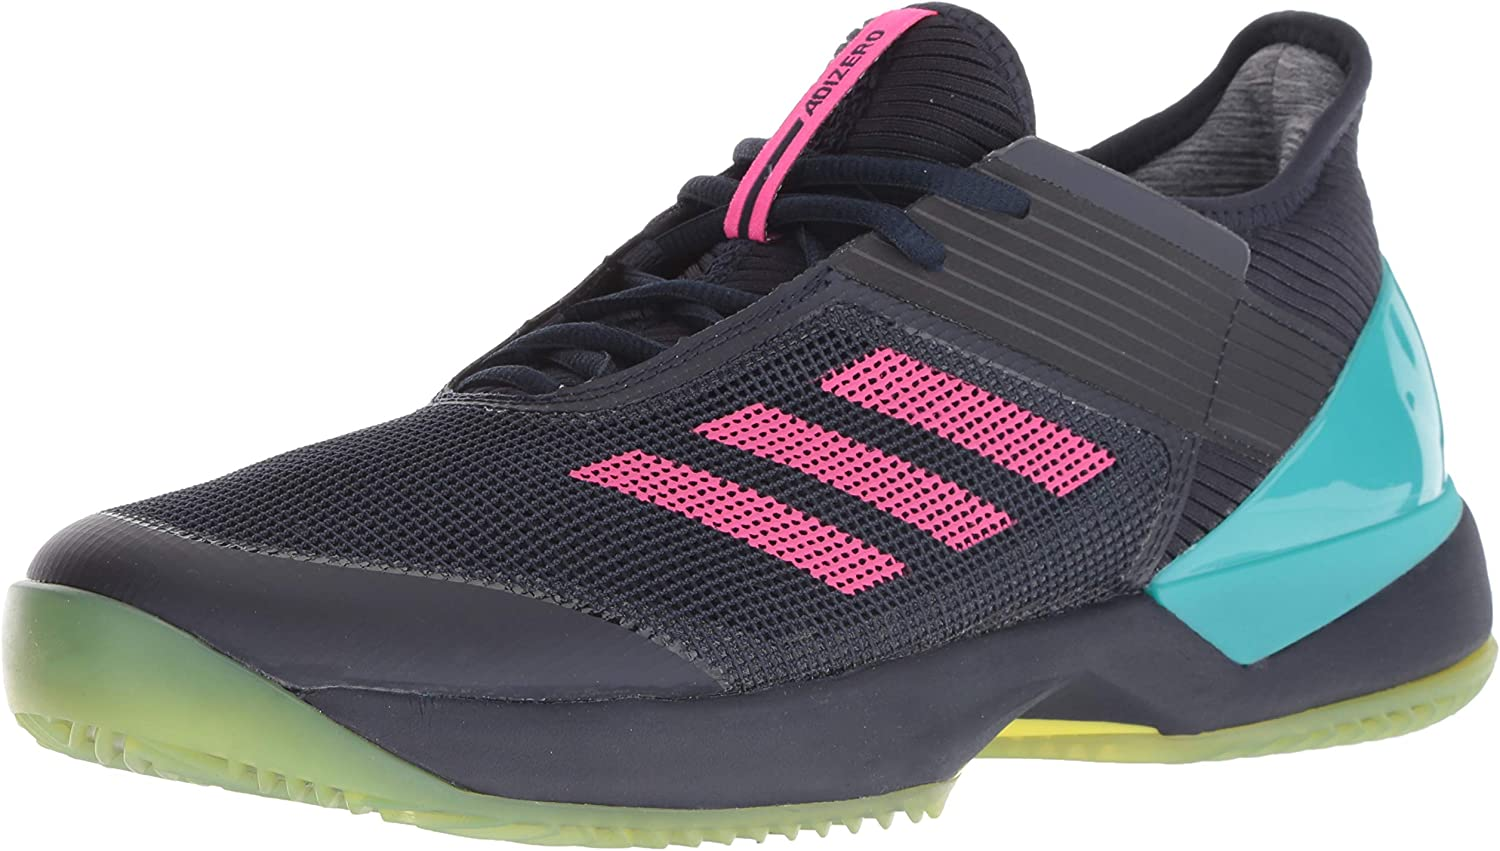 Adidas Originals Women's Adizero Ubersonic 3 Clay Tennis shoes